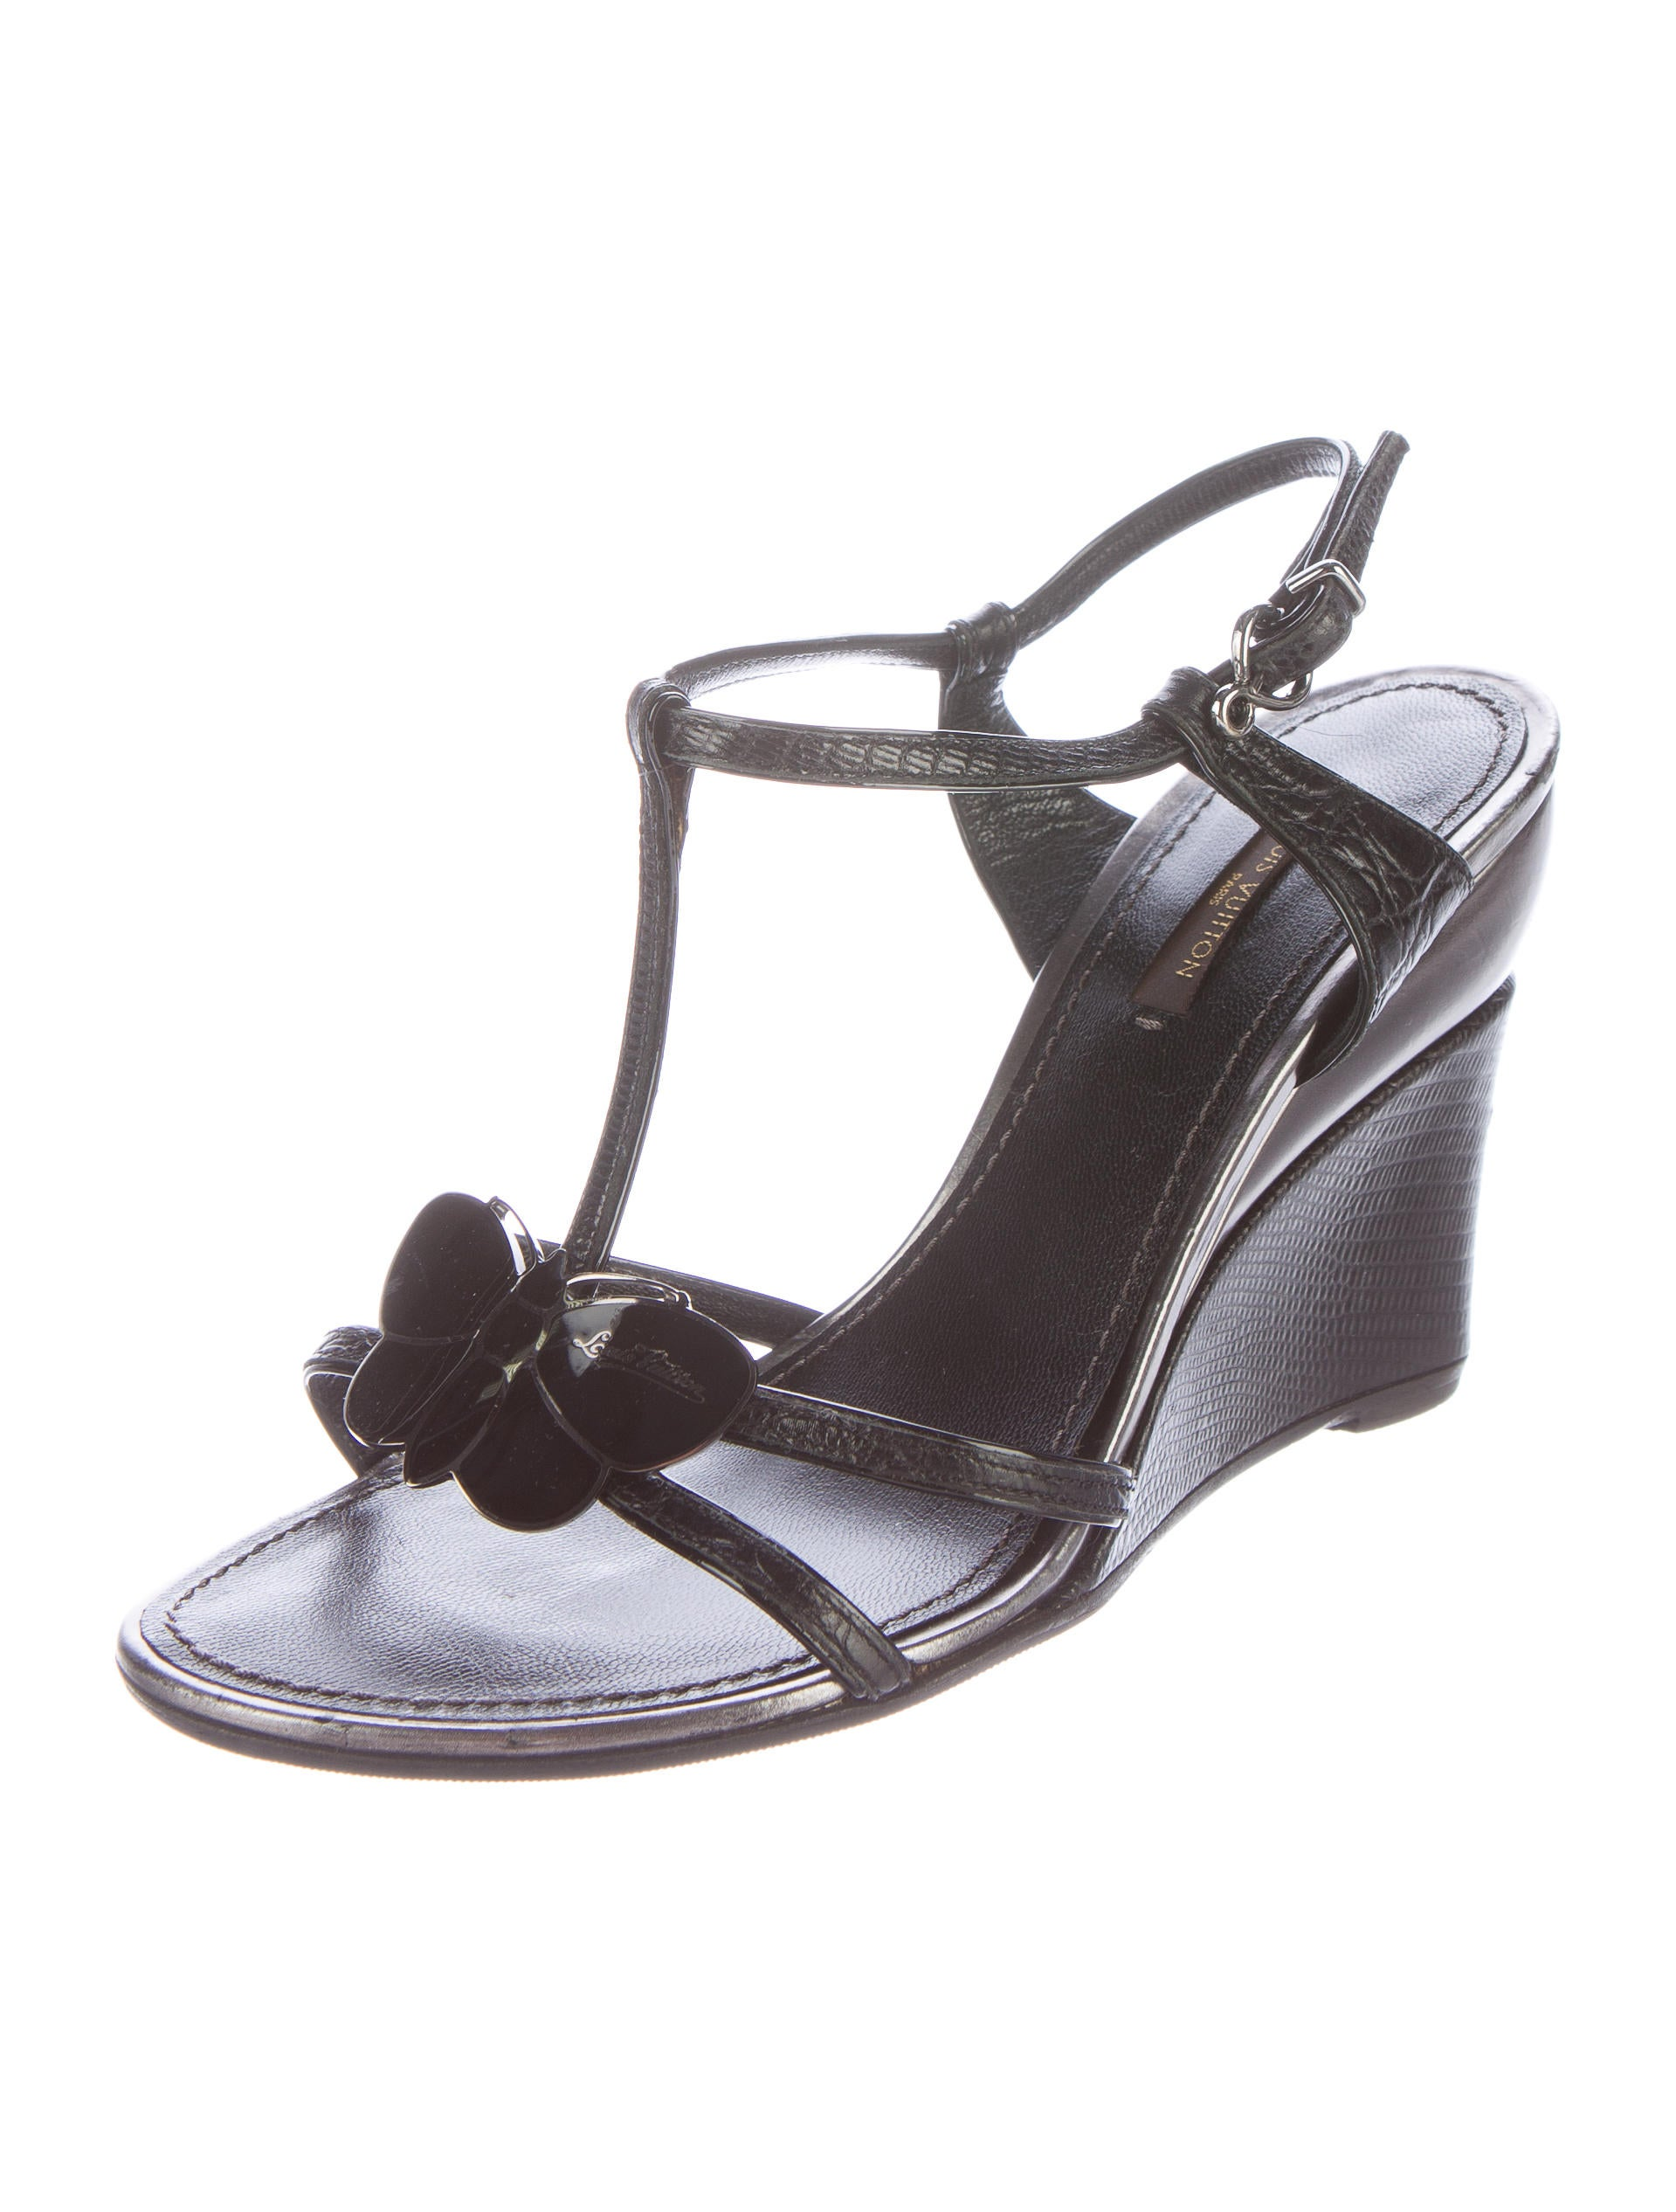 louis vuitton embellished wedge sandals shoes lou91883